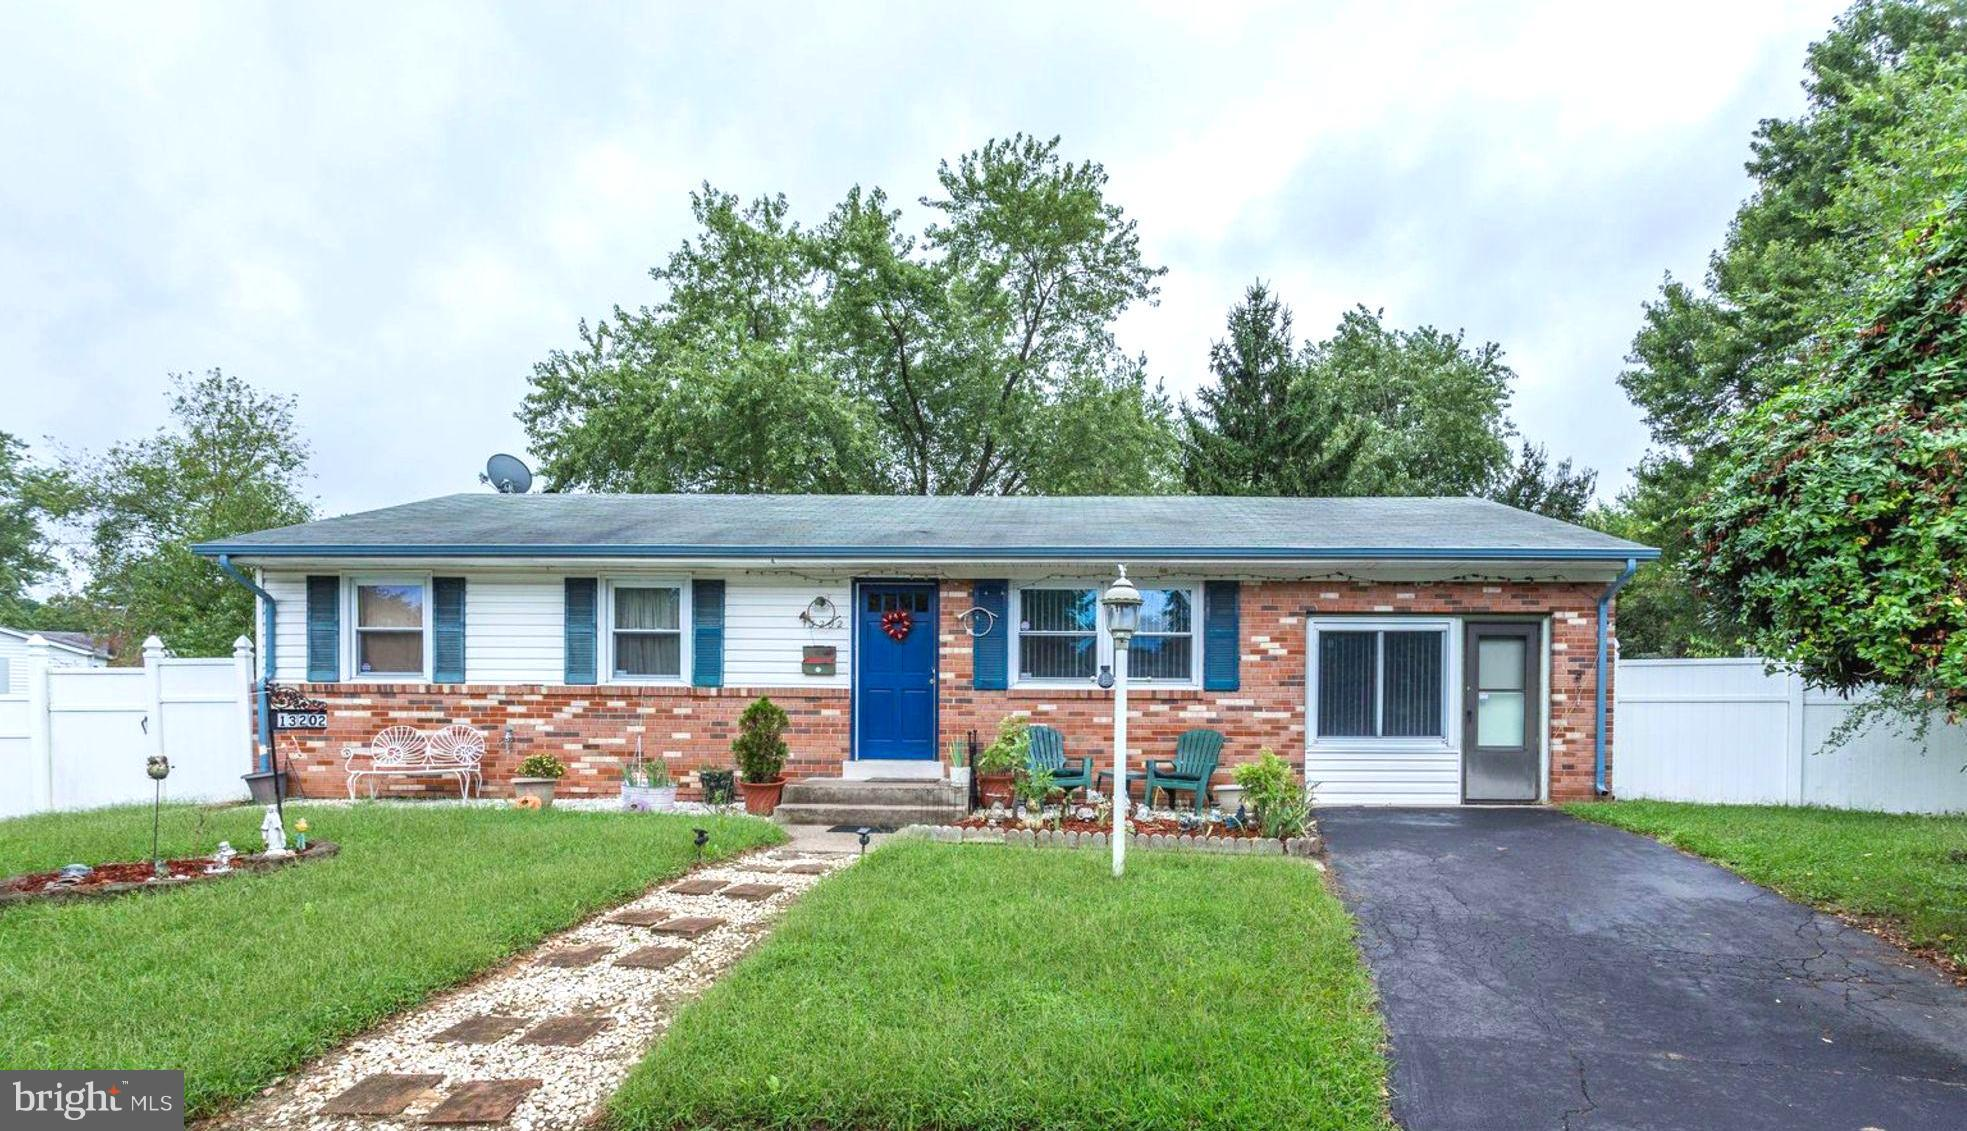 Updated Rambler on over 1/4 Acre! Private Cul-de-sac living! Remodeled Kit w/Granite, Tile, Cabinets, S/S DishW/Gas Stove.  Samsung Refrig! Living rm features Wood floors & Plenty of Natural Light. Desirable layout, Master & 2 Bedrooms on left wing of Home. Full Dining rm addition on Right Side w/ Bonus office space! + Updated Siding, Roof, Furnace,Windows, Baths. Near VRE, Bus & Commuter lots!